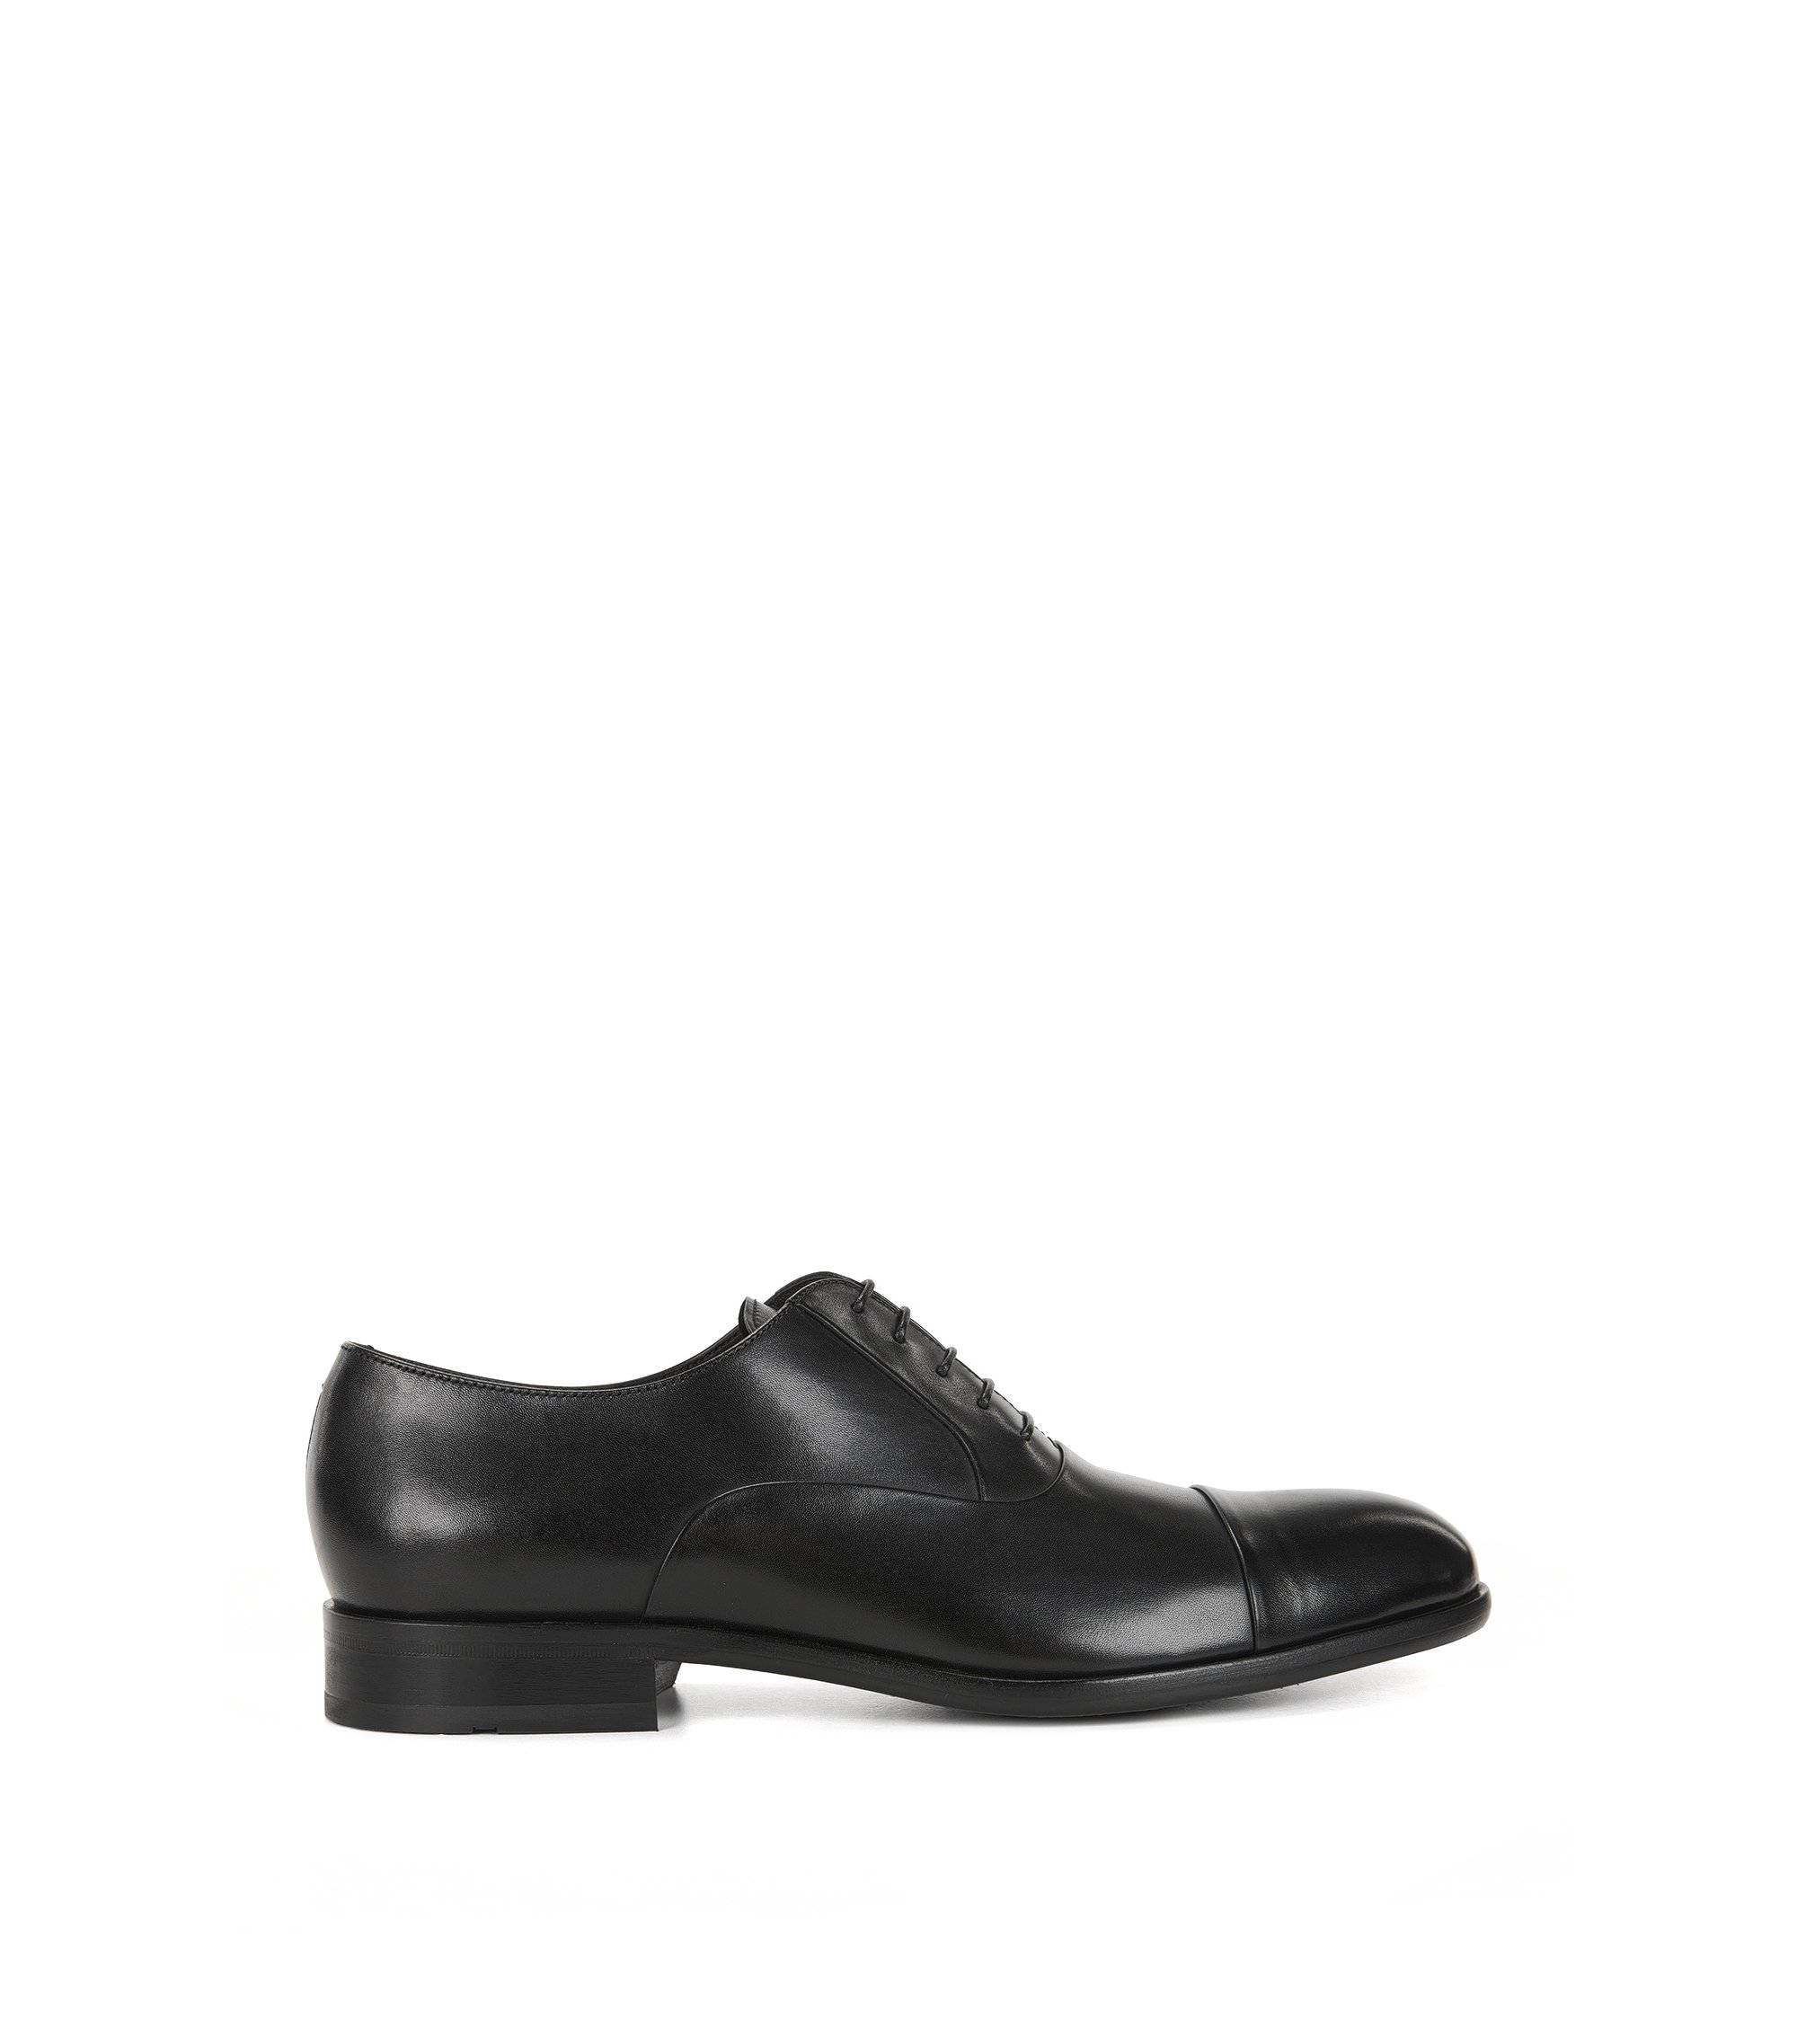 Lace-up Oxford shoes in polished leather, Negro